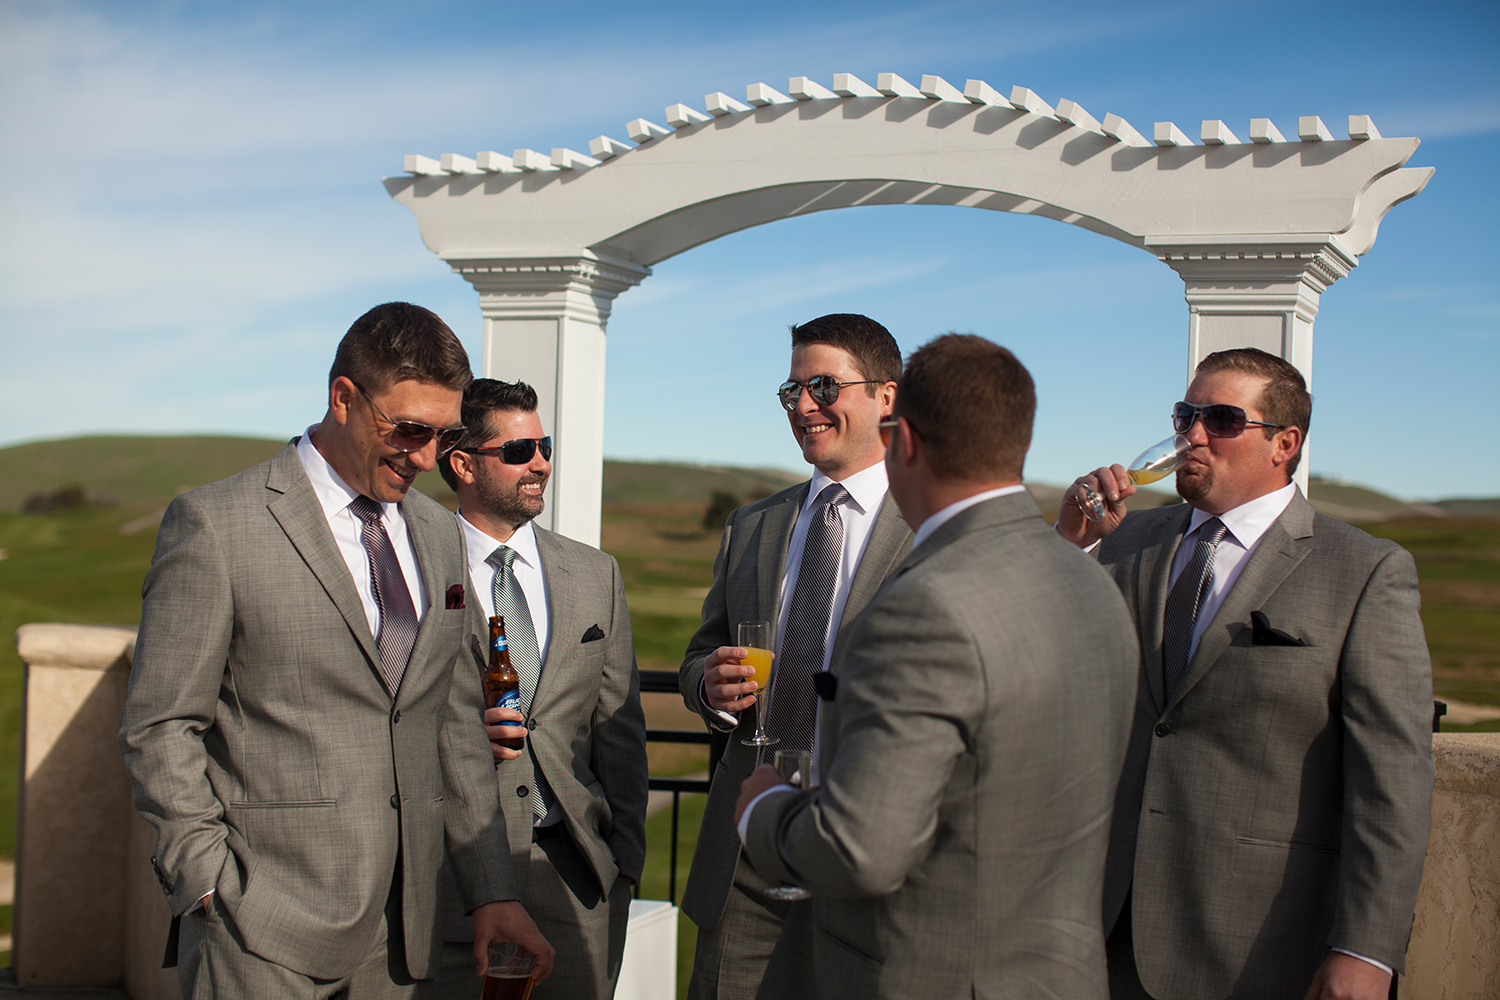 Dena_Rooney_Wedding_Photographer_Poppy_Ridge_004.jpg